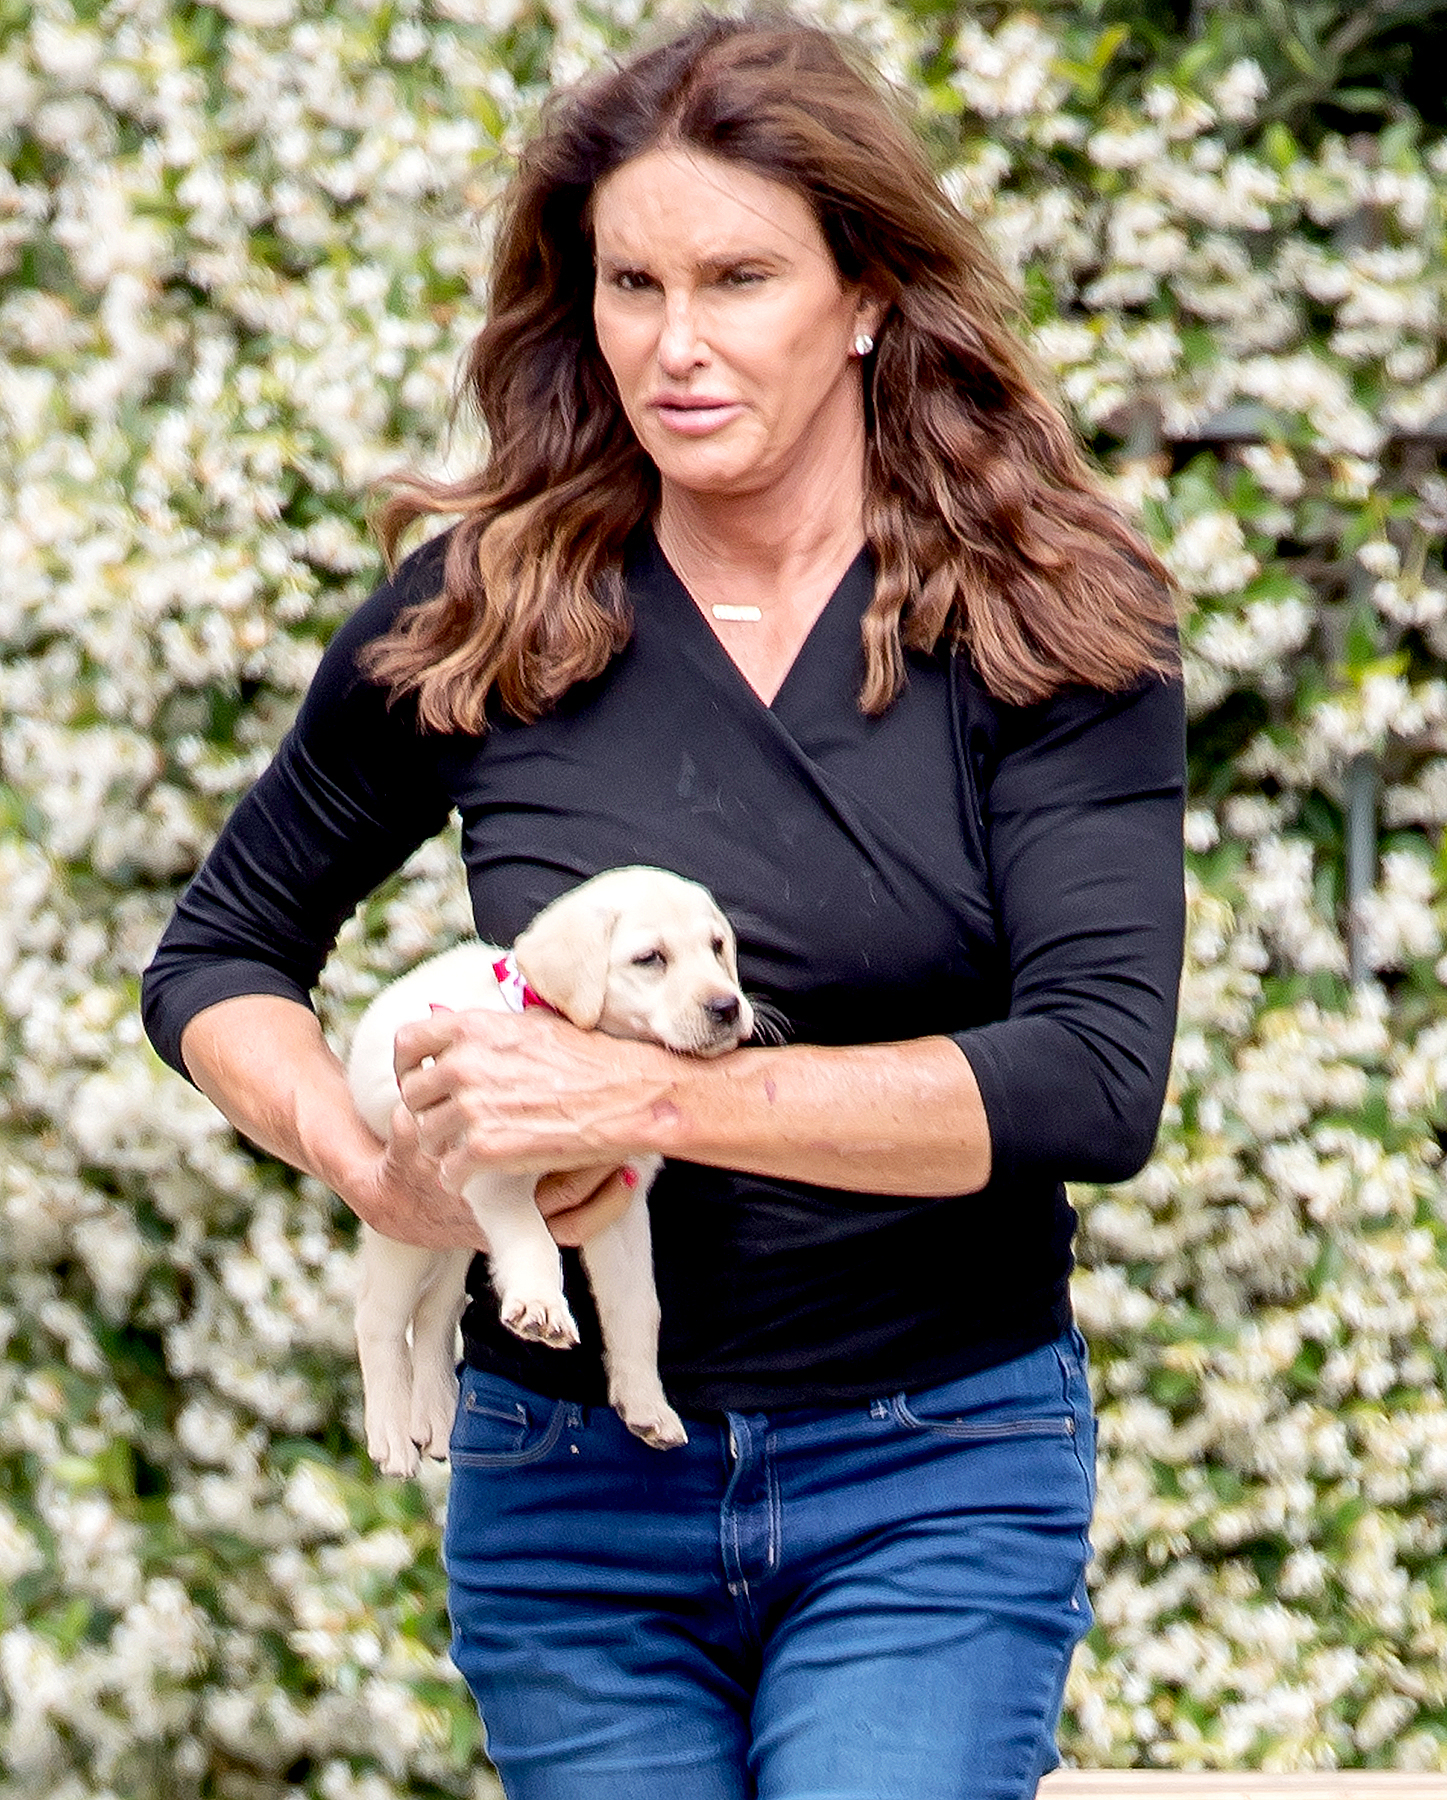 Caitlyn Jenner is seen playing with her new puppy in Malibu, CA on June 5, 2017.